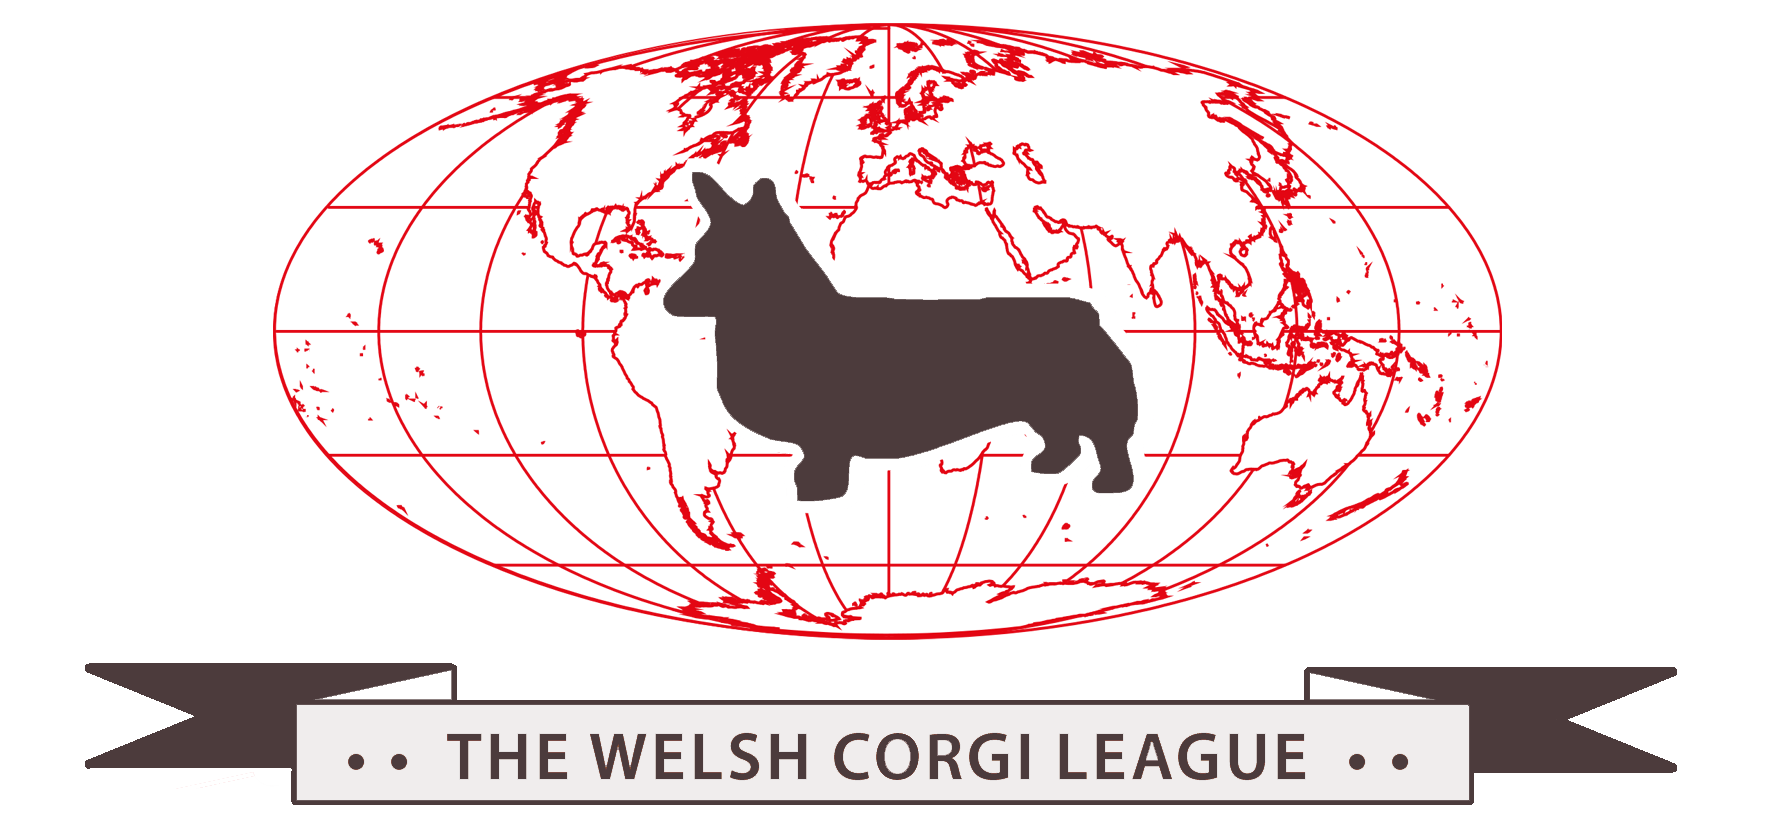 Welsh Corgi League logo